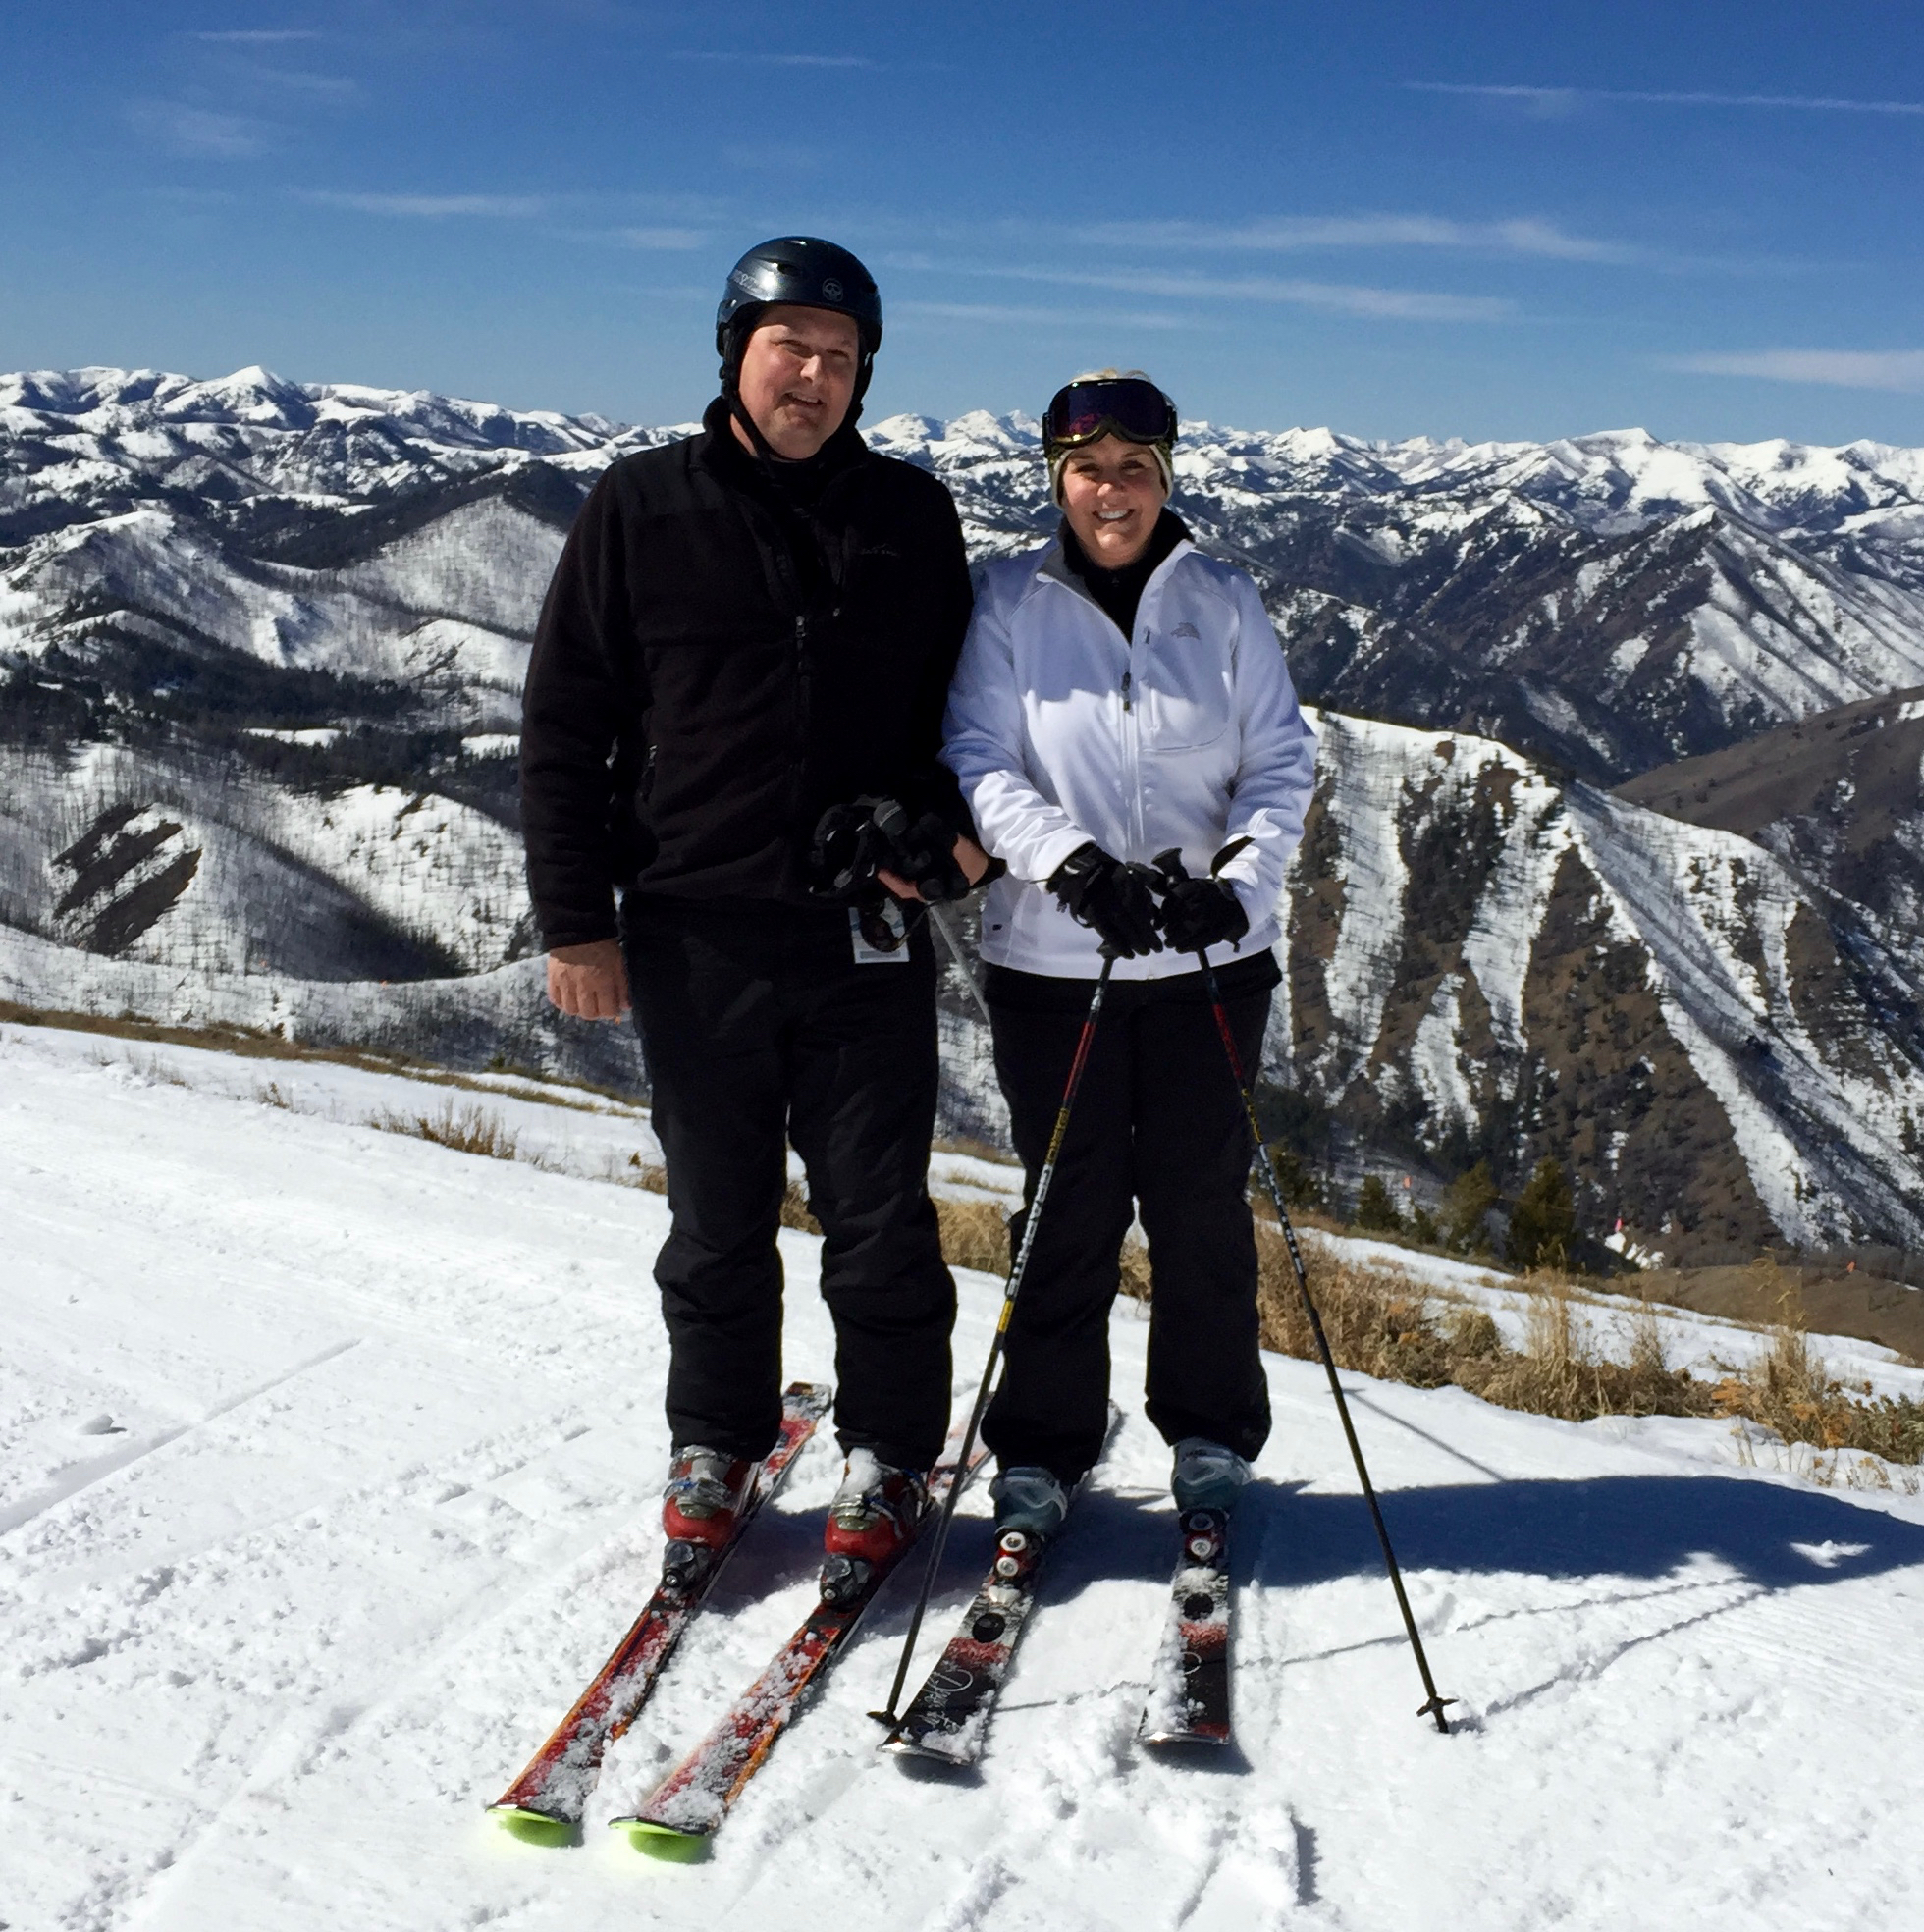 Mary&David Skiing.JPG